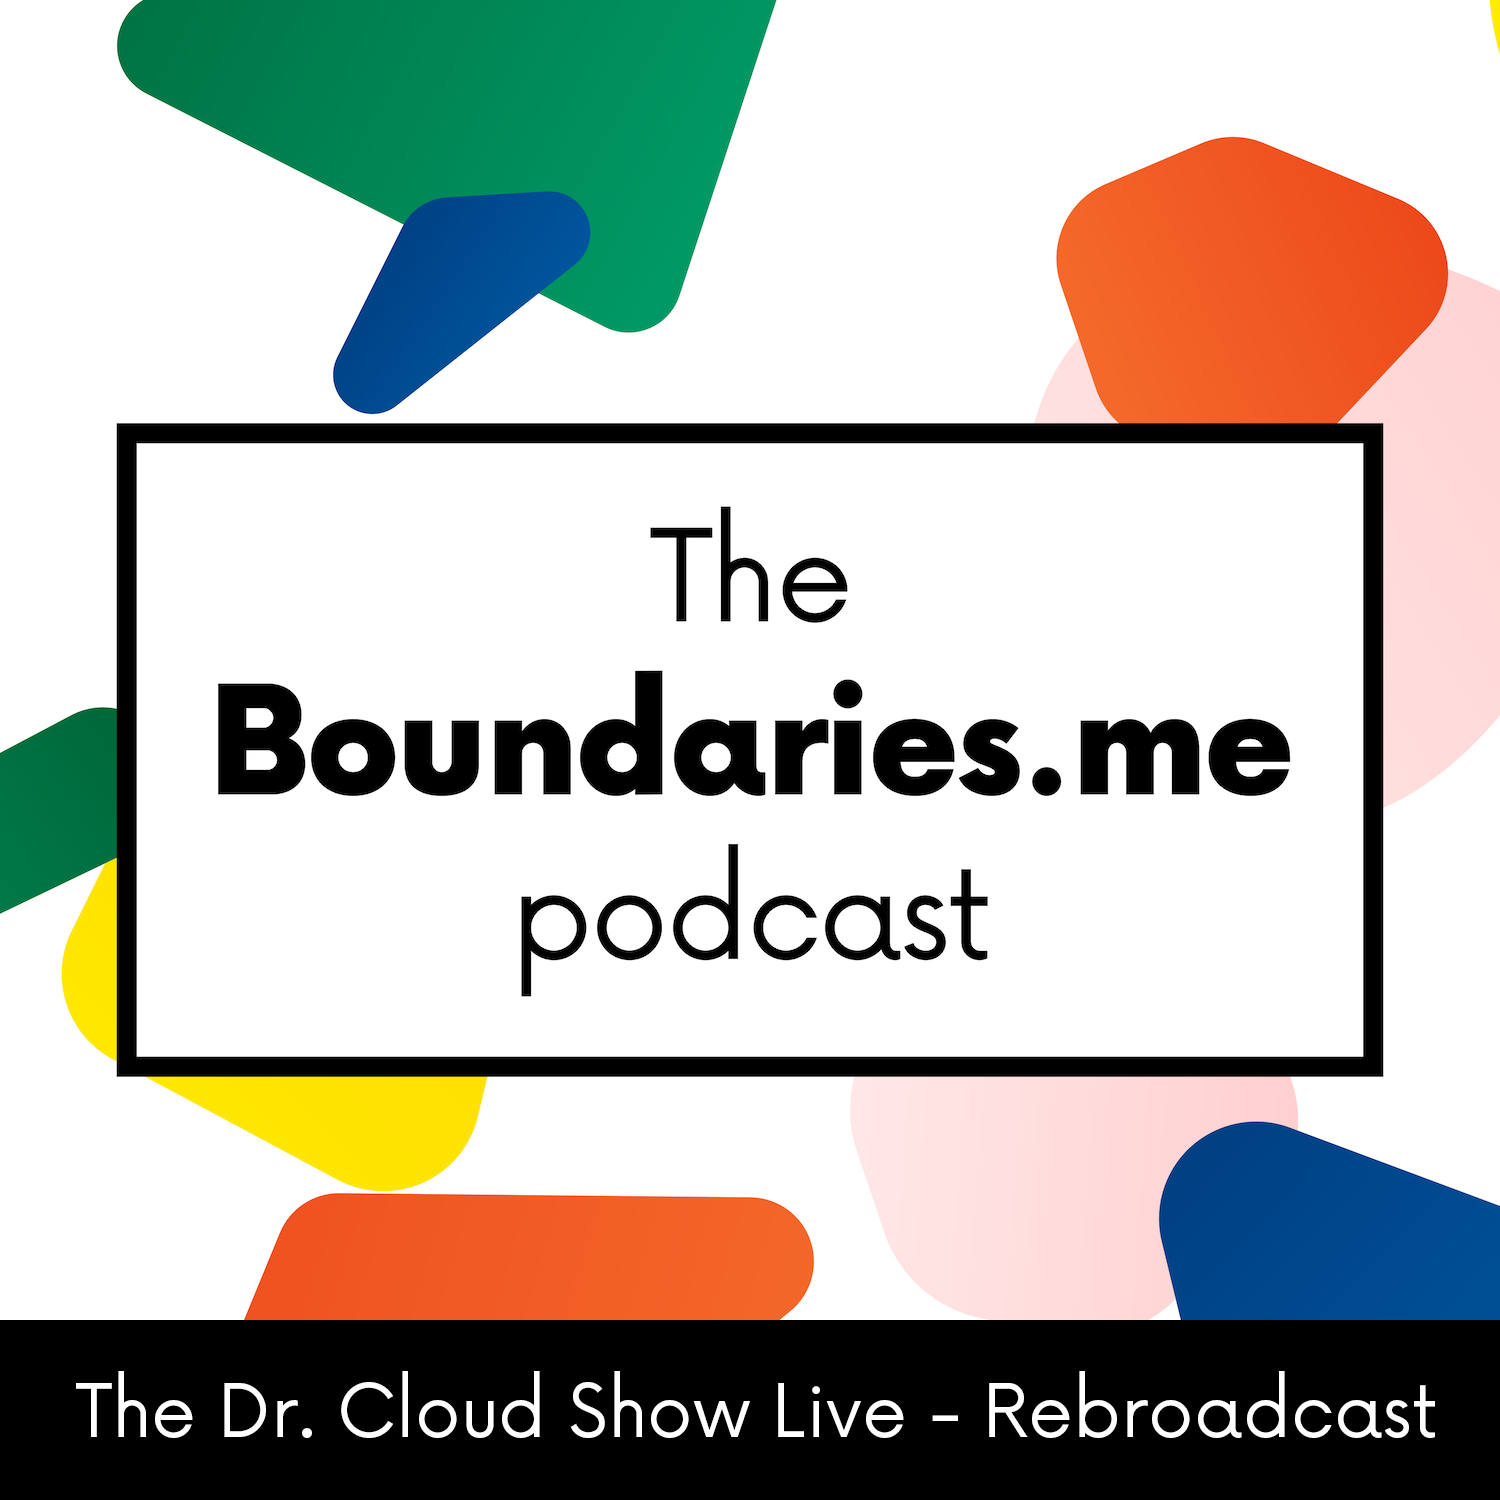 Episode 139 - The Dr. Cloud Show Live - Being Vulnerable The Right Way - 11-16-2020